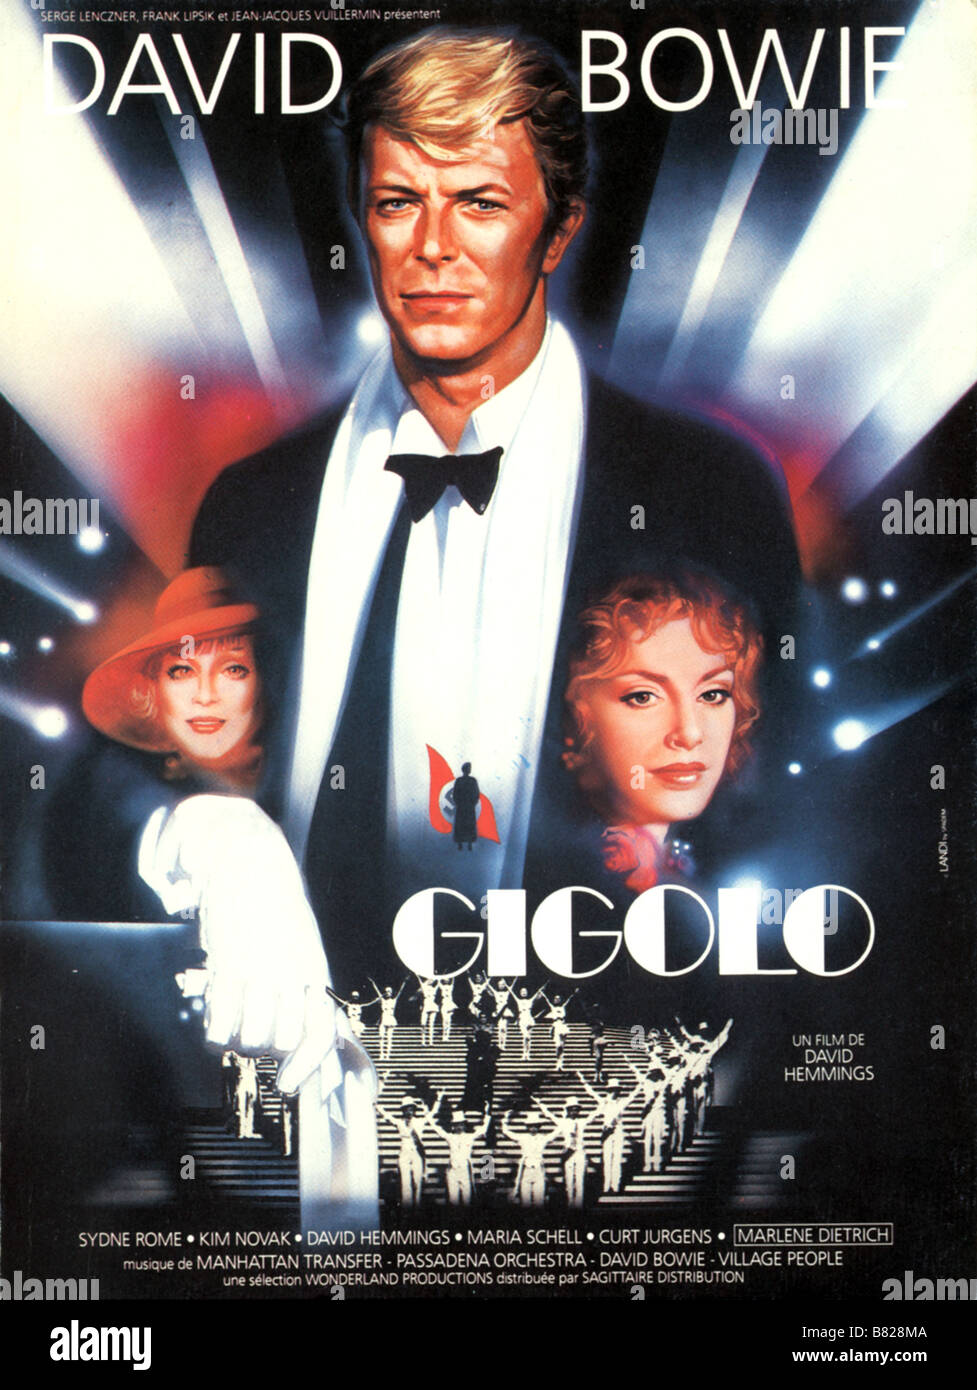 Schöner Film Schoner Gigolo High Resolution Stock Photography And Images - Alamy